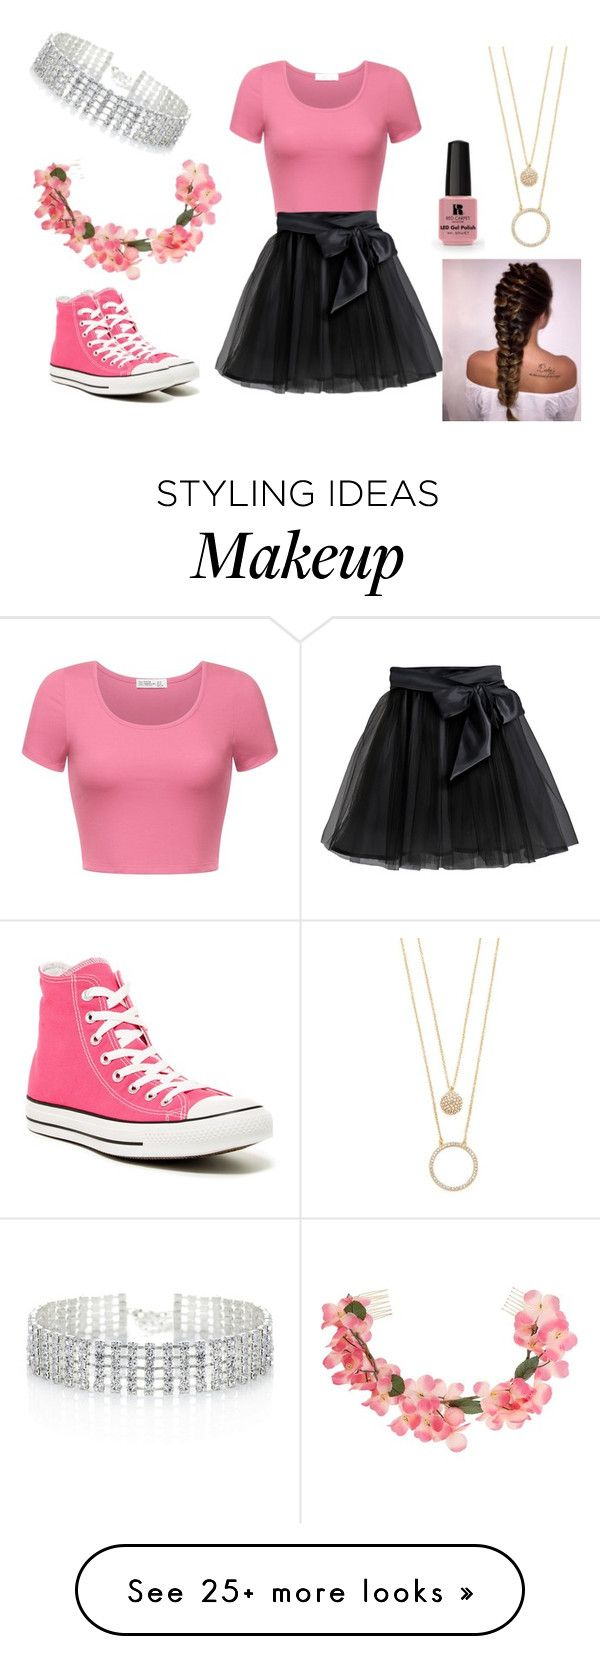 """When You're Too Tumblr"" by peter-pan-in-wonderland on Polyvore featuring Little Wardrobe London, Victoria's Secret, Red Herring, Kate Spade, Converse and Miss Selfridge"